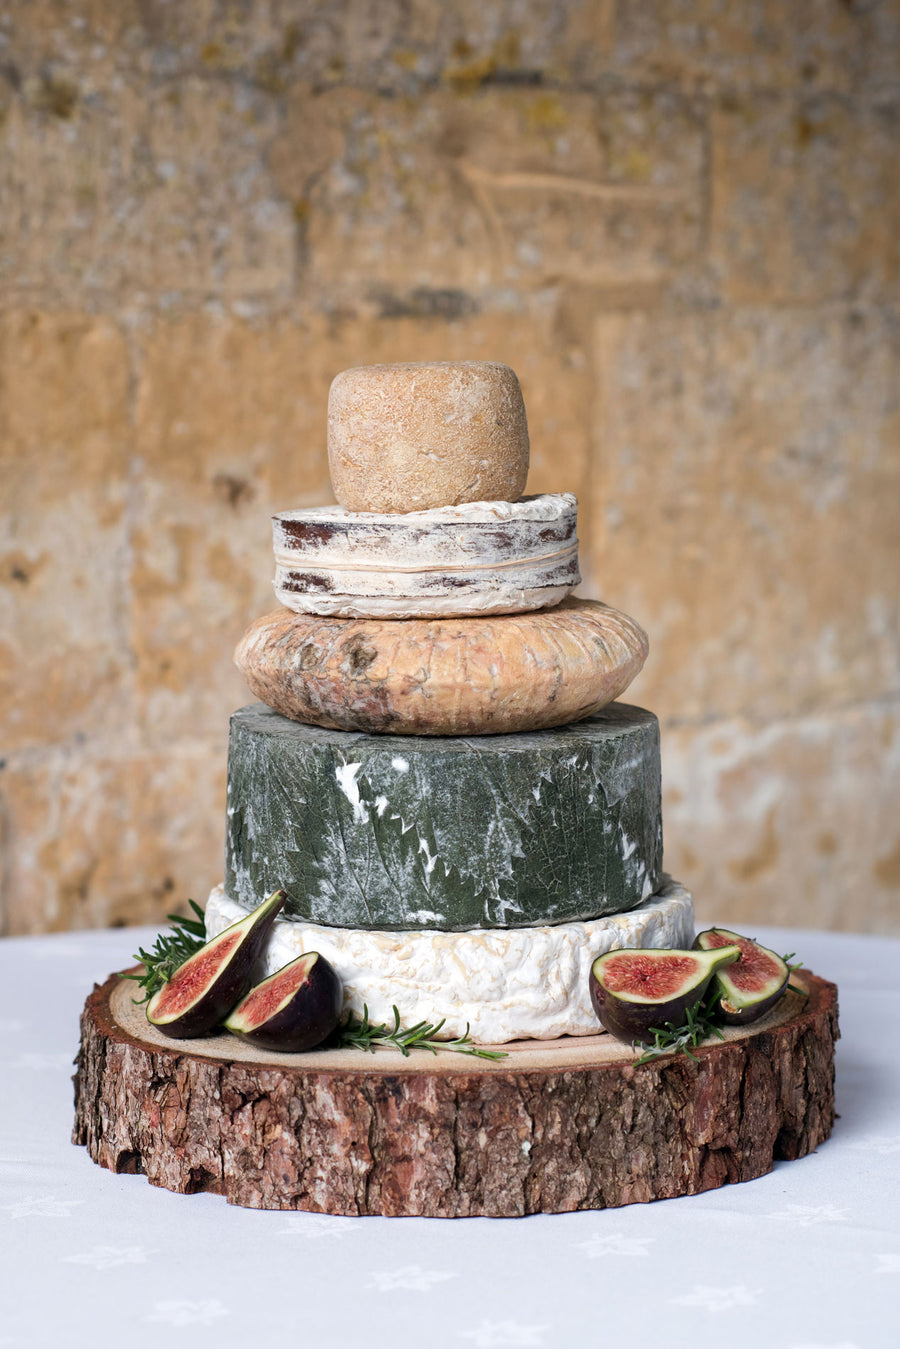 Tetbury<p>Cheese<p>Wedding Cake